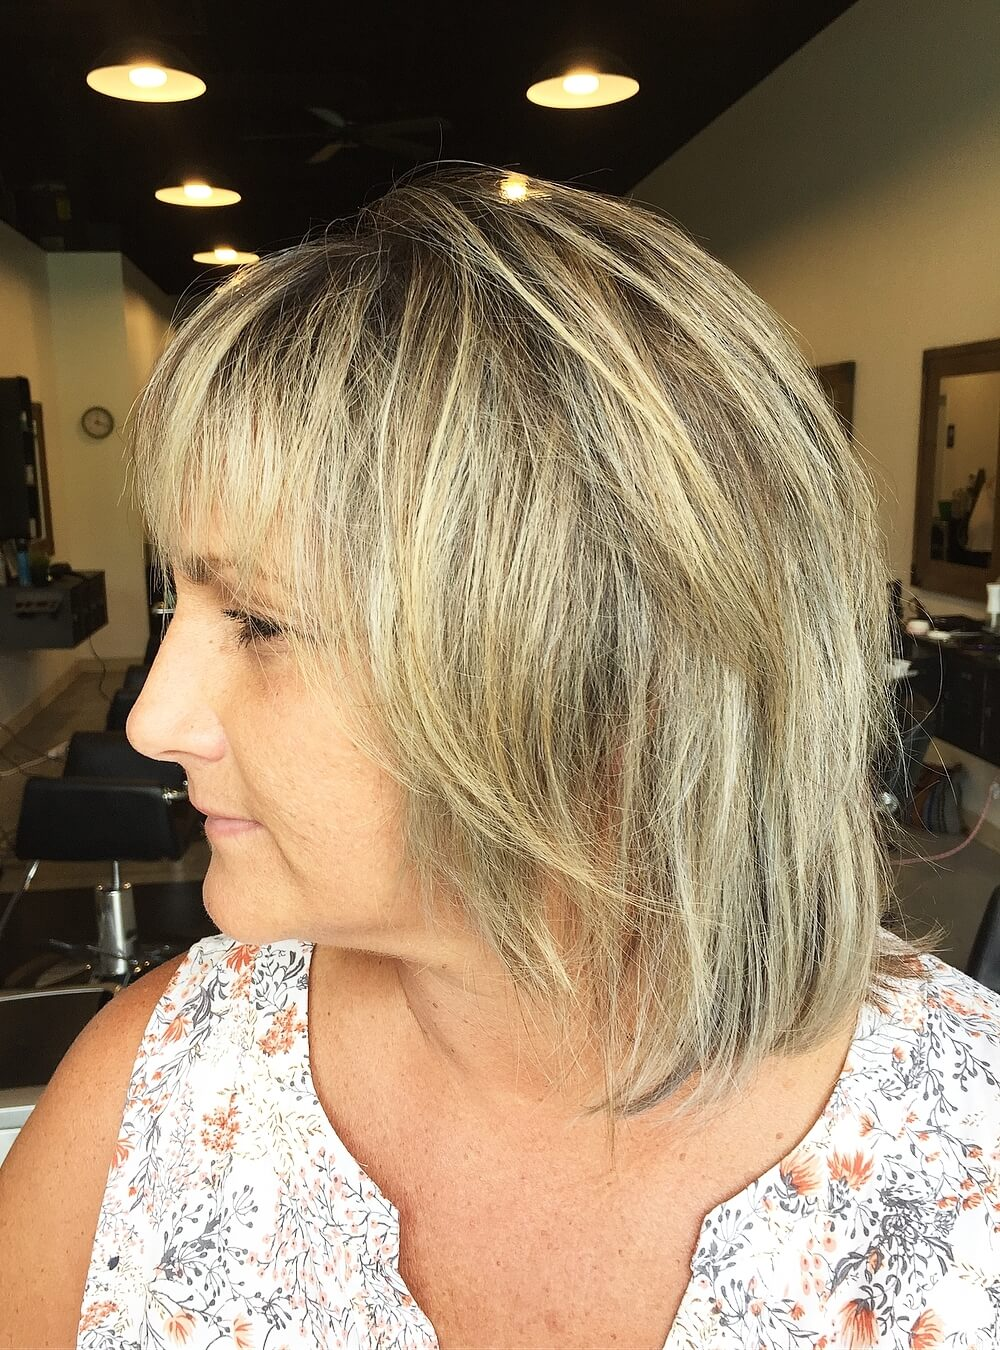 https://zhurnal-lady.com/wp-content/uploads/2019/12/shaggy-hairstyles-for-women-over-50-16.jpg